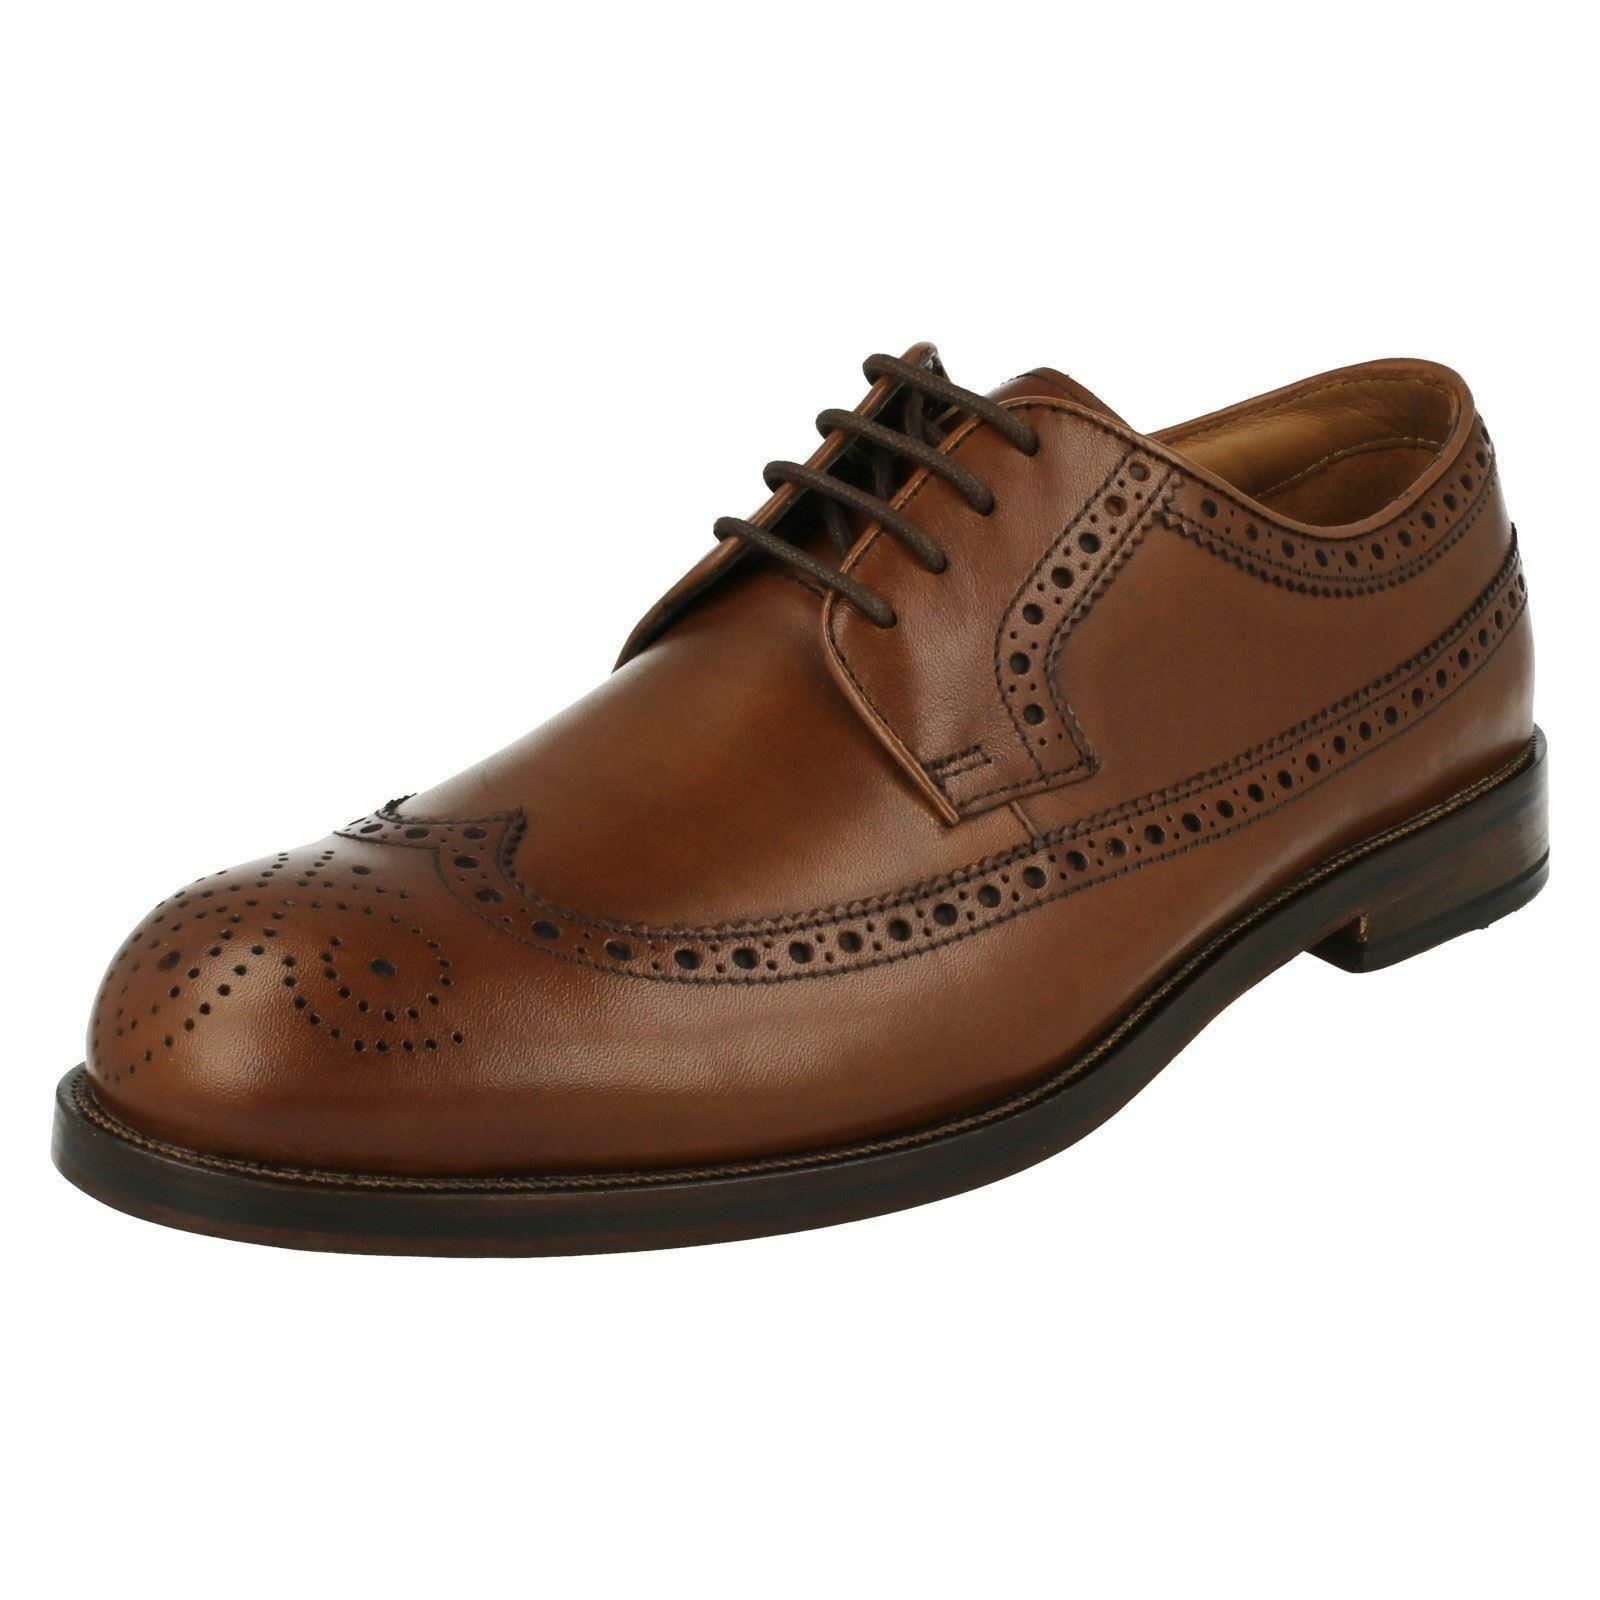 Mens Clarks Coling Limit Smart Black or Tan Leather Lace Up Shoes